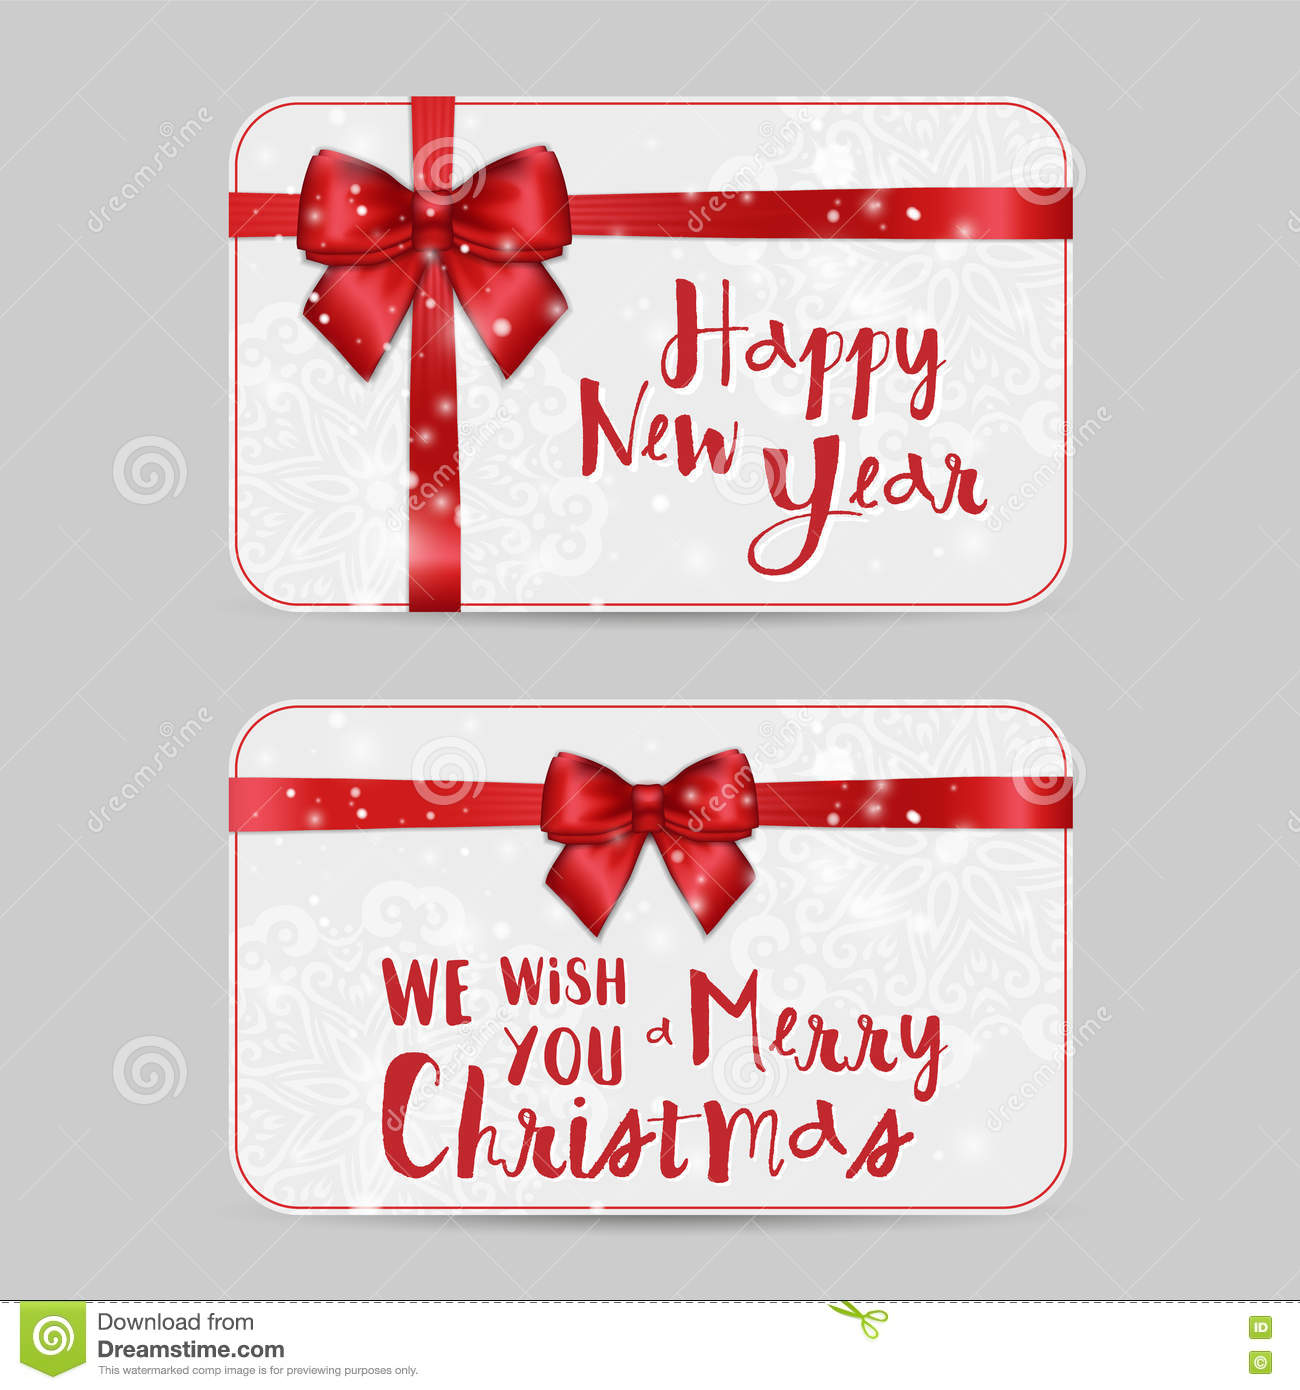 merry christmas gift voucher certificate template design stock christmas or ntal cards shiny holiday red satin ribbon new year template for greetings